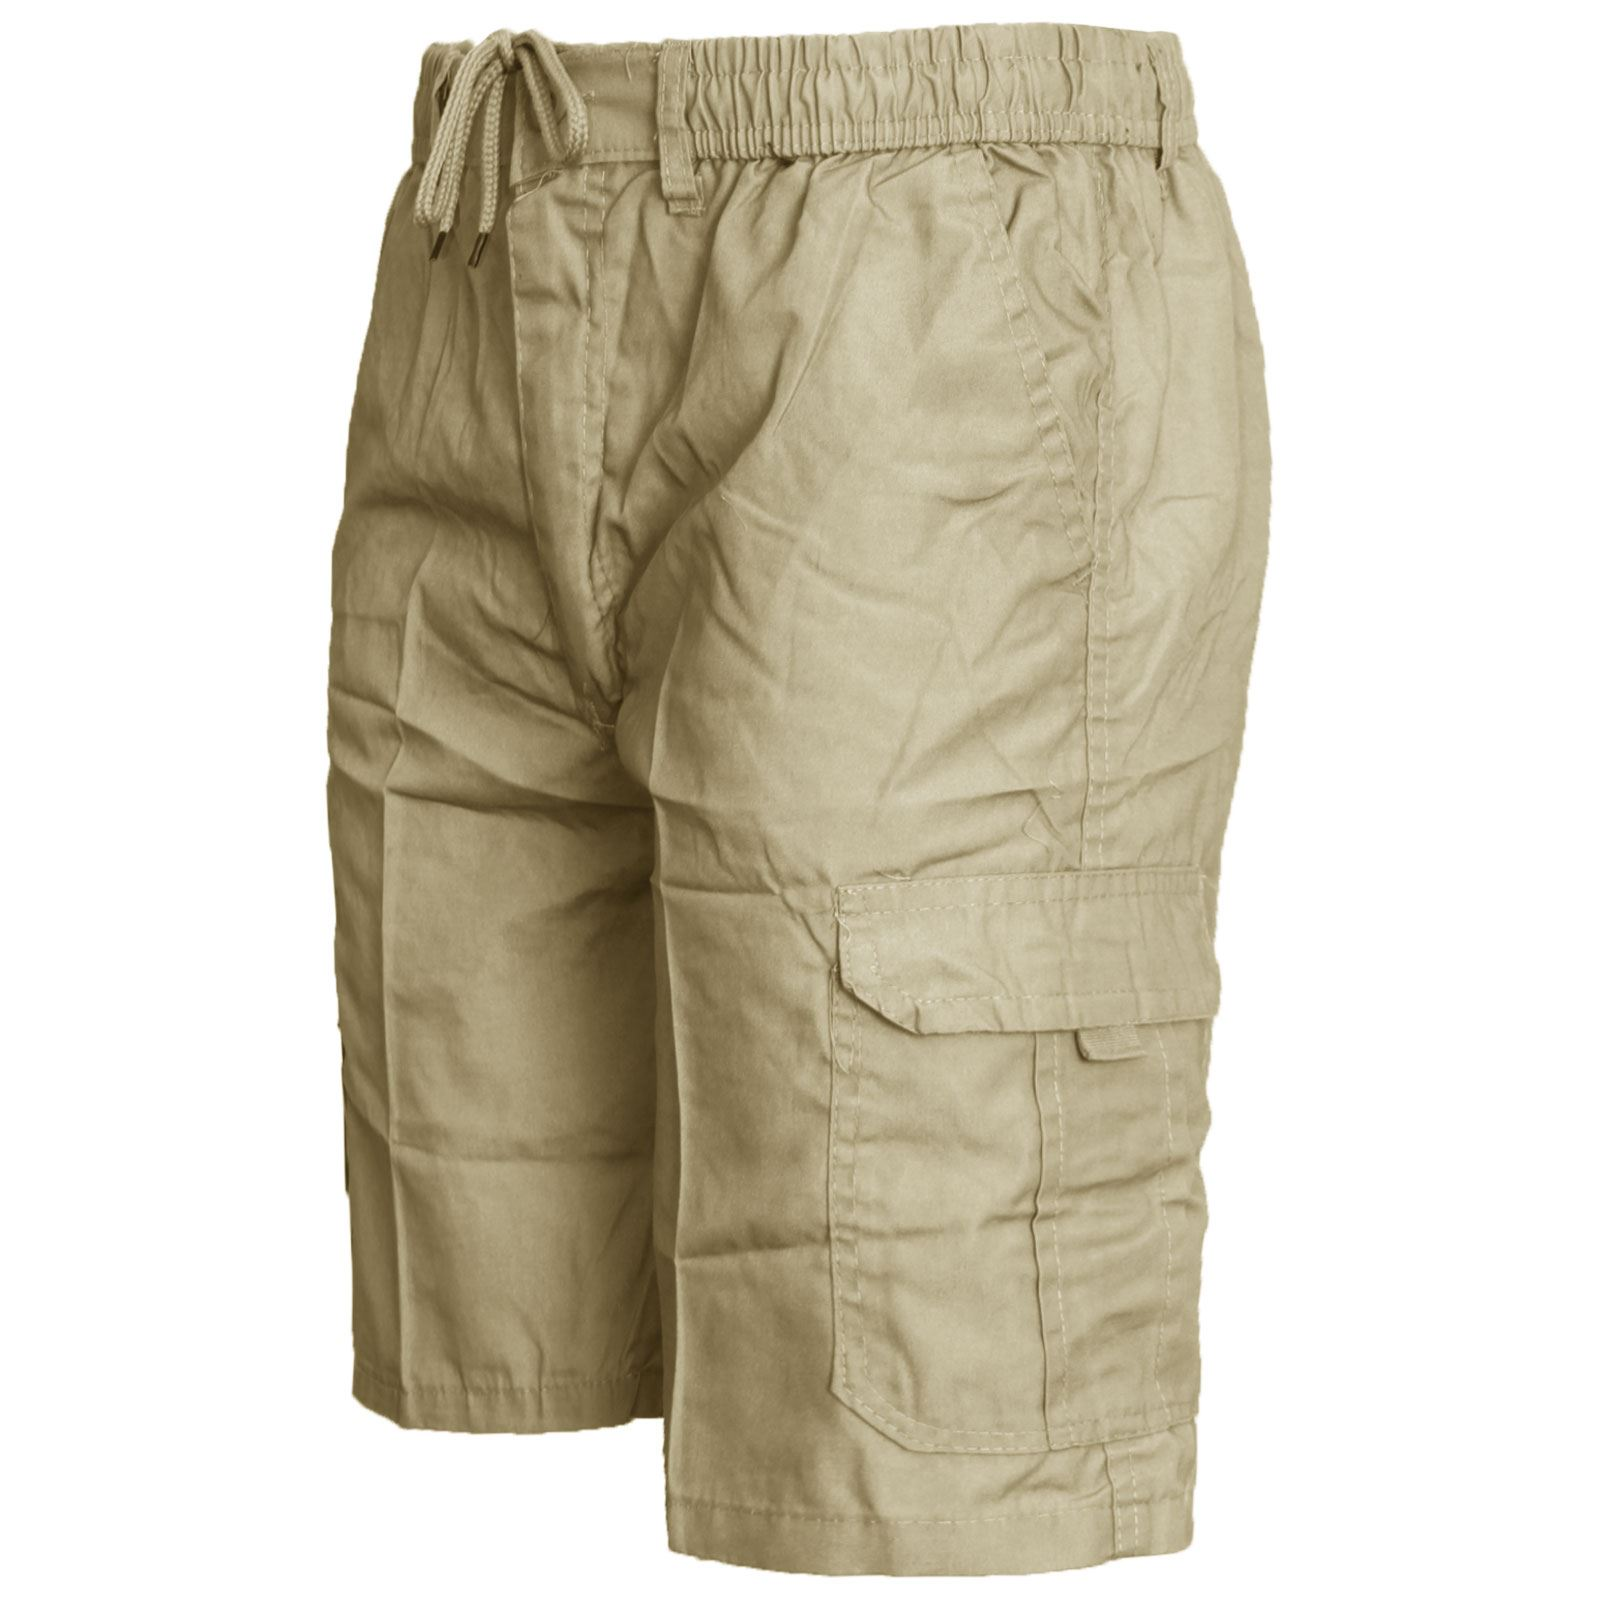 MENS-ELASTICATED-KNEE-LENGTH-OR-3-4-SHORTS-CARGO-COMBAT-MULTI-POCKET-SUMMER-PANT thumbnail 4